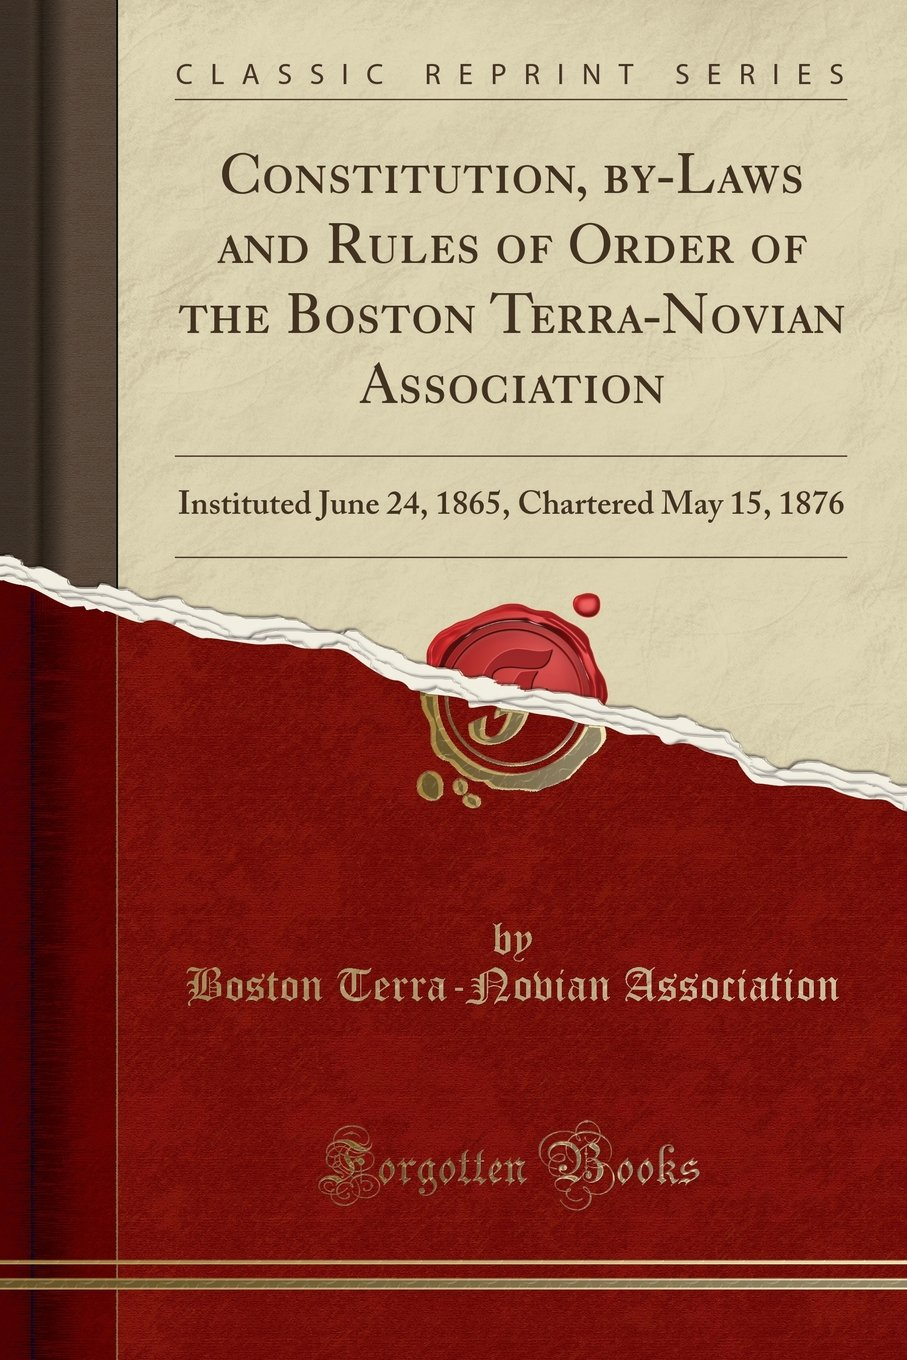 Constitution, by-Laws and Rules of Order of the Boston Terra-Novian Association: Instituted June 24, 1865, Chartered May 15, 1876 (Classic Reprint) ebook